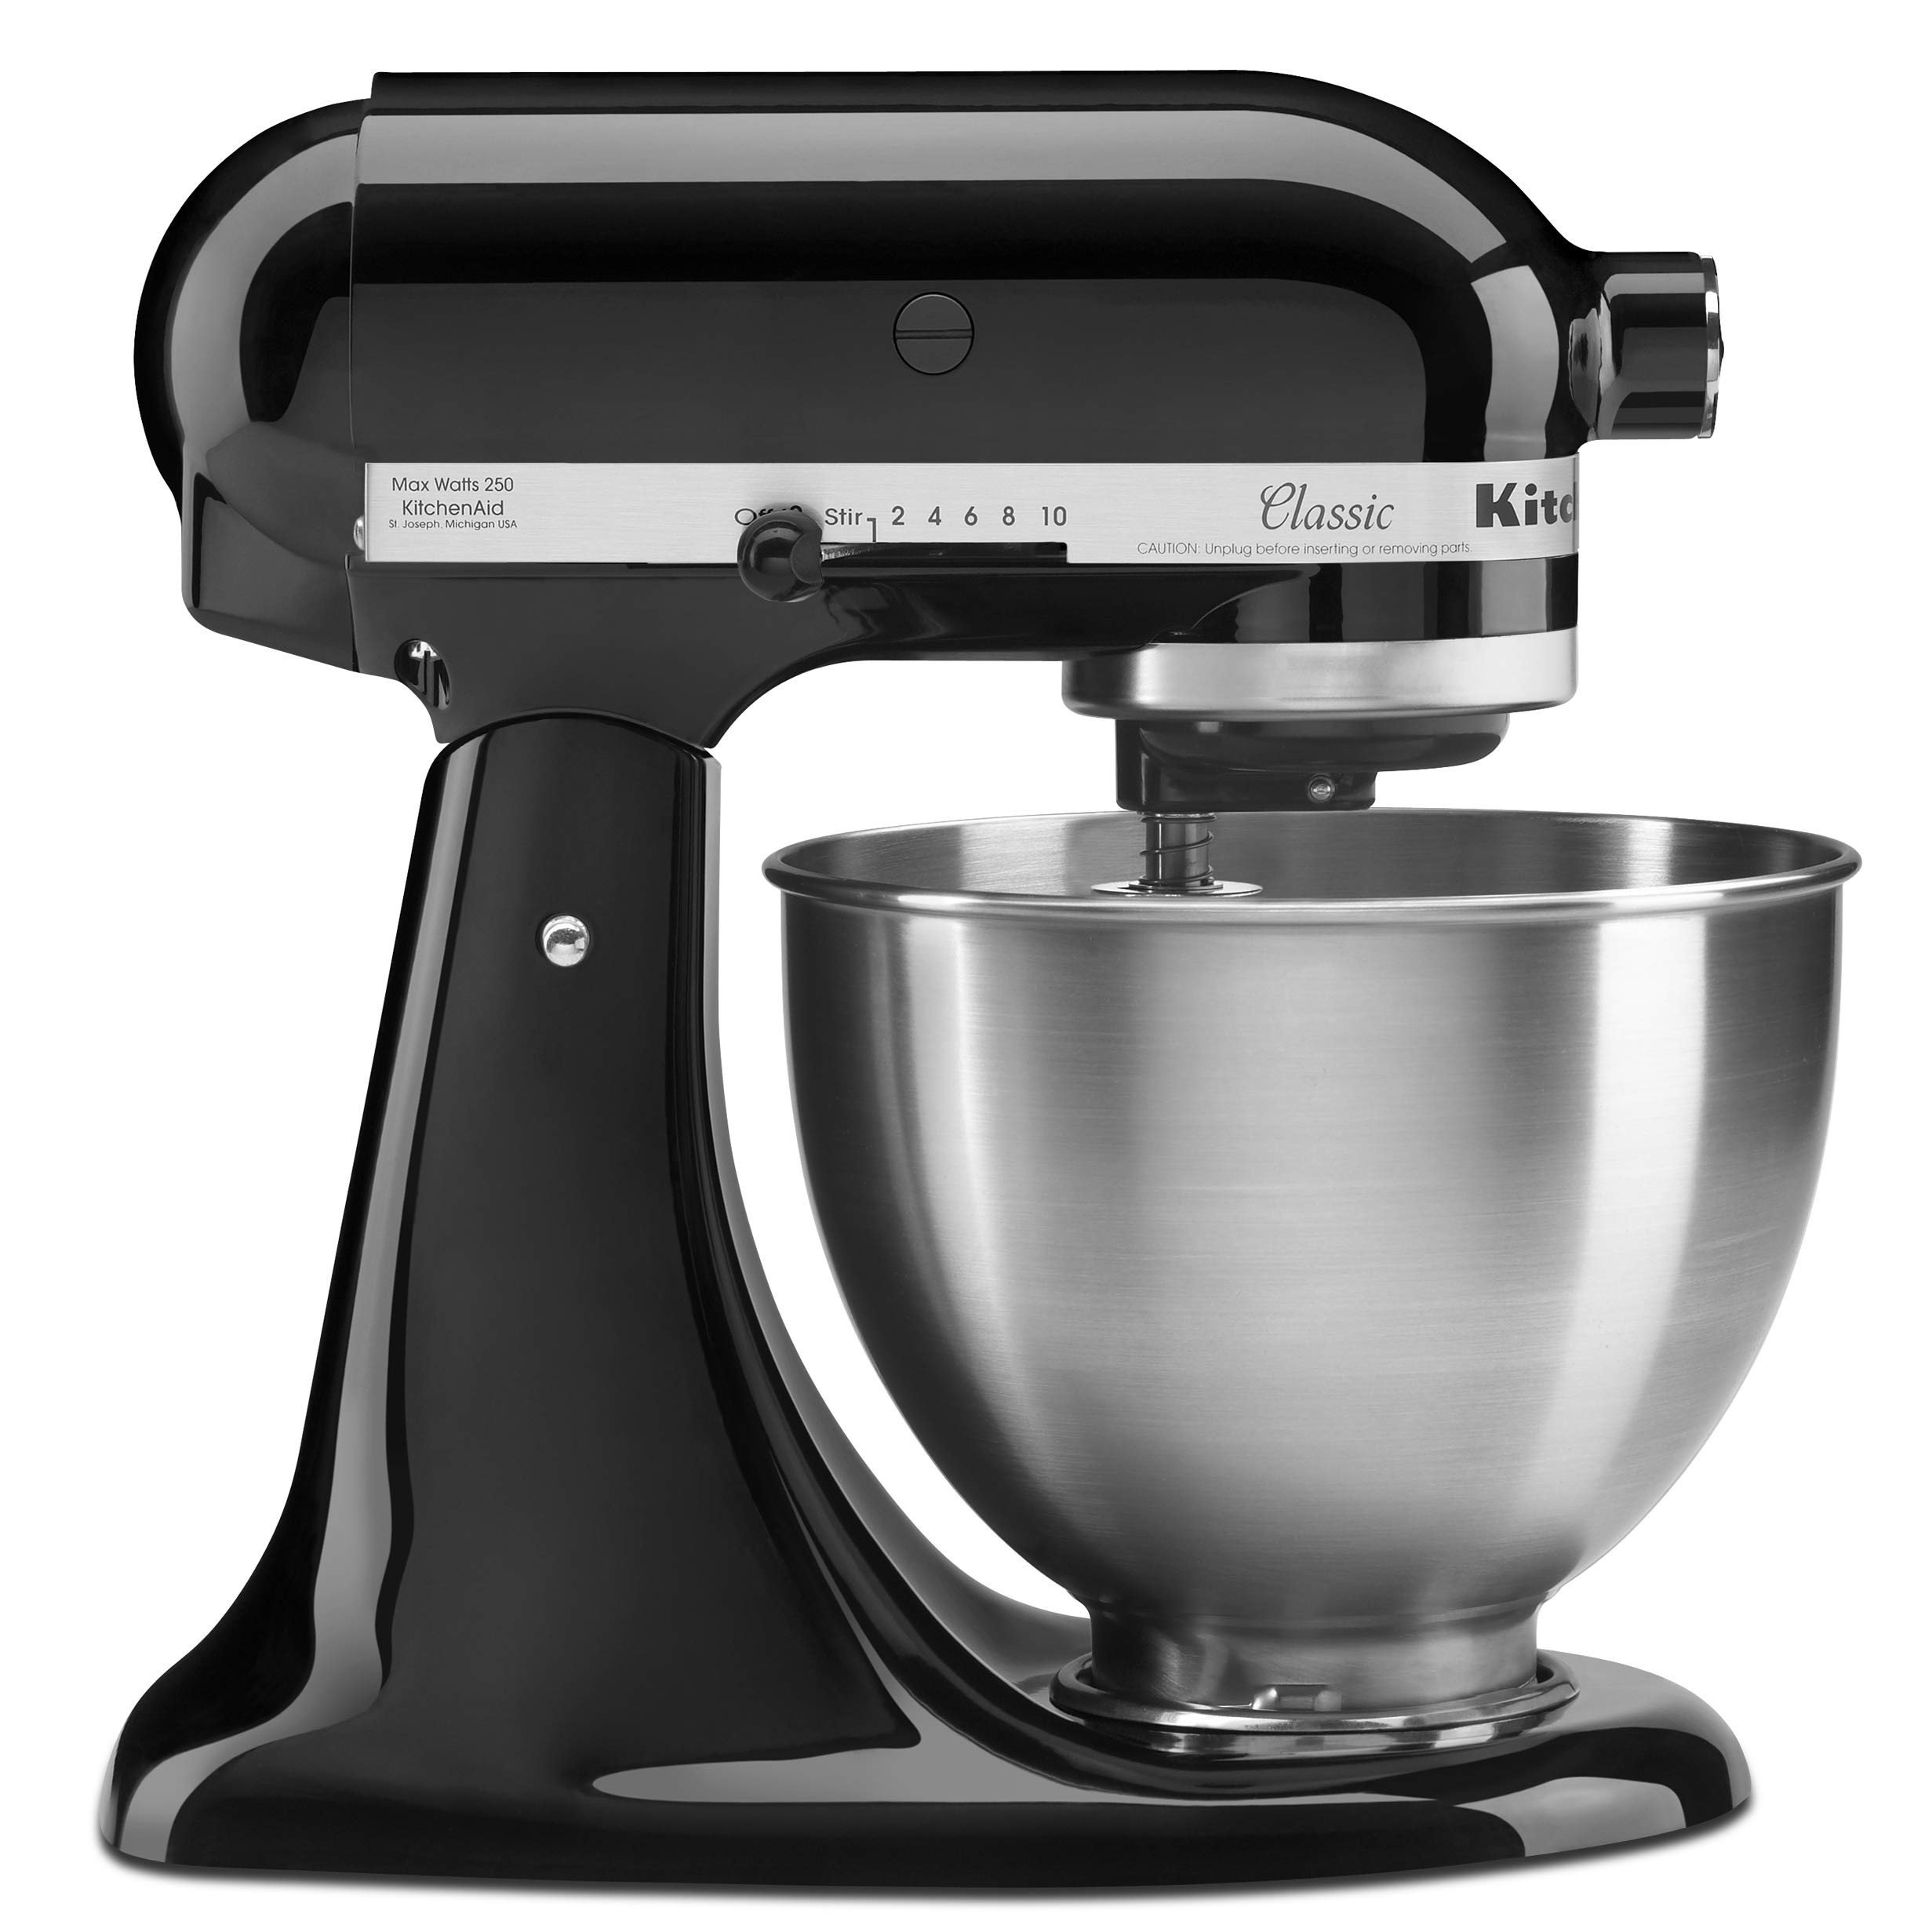 KitchenAid Classic Series 4.5 Quart Tilt-Head Stand Mixer, Onyx Black (K45SSOB) by KitchenAid